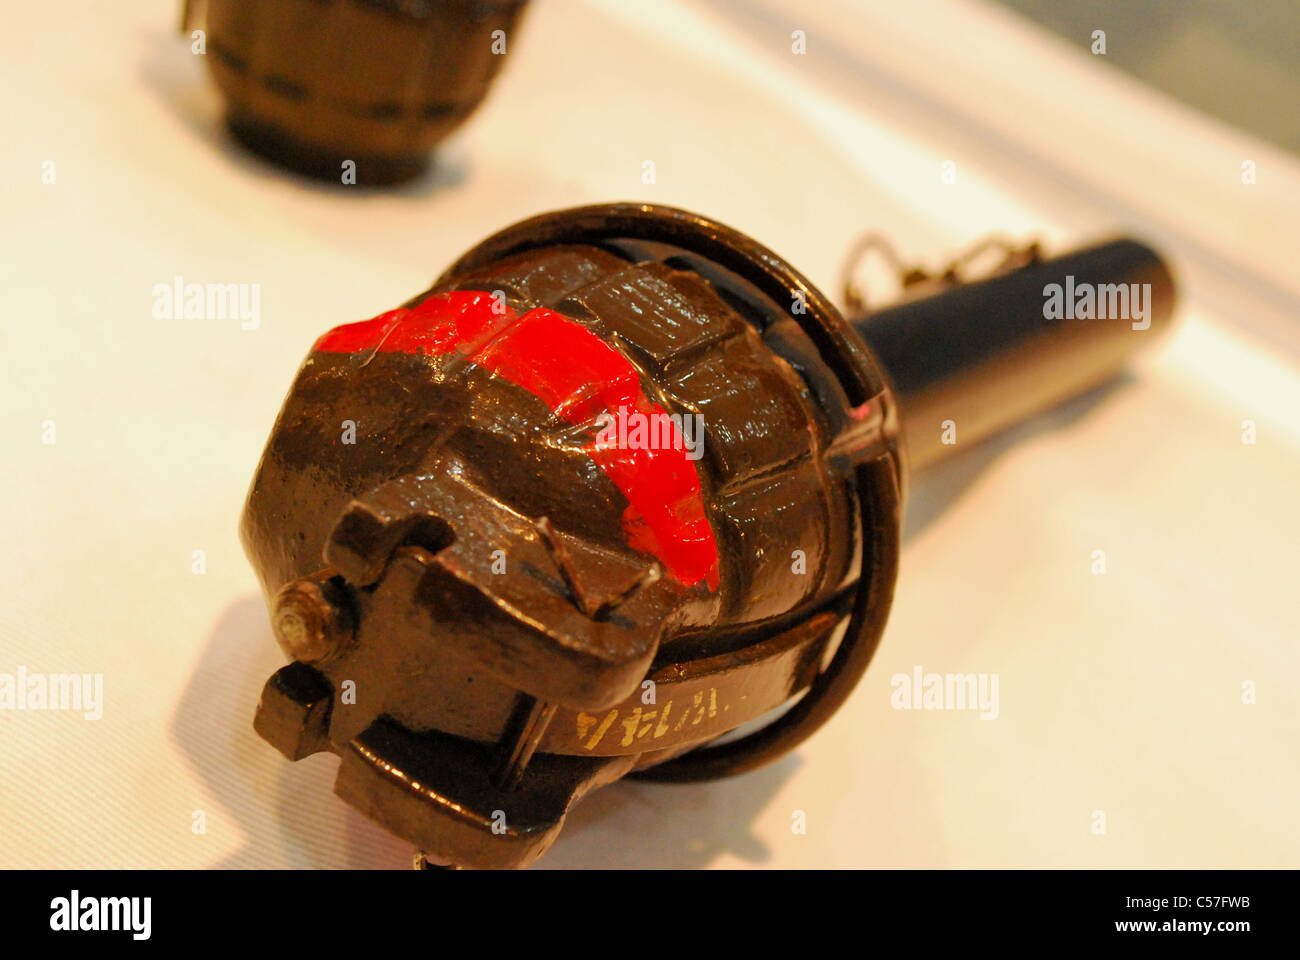 Main grenade36m close-up Banque D'Images